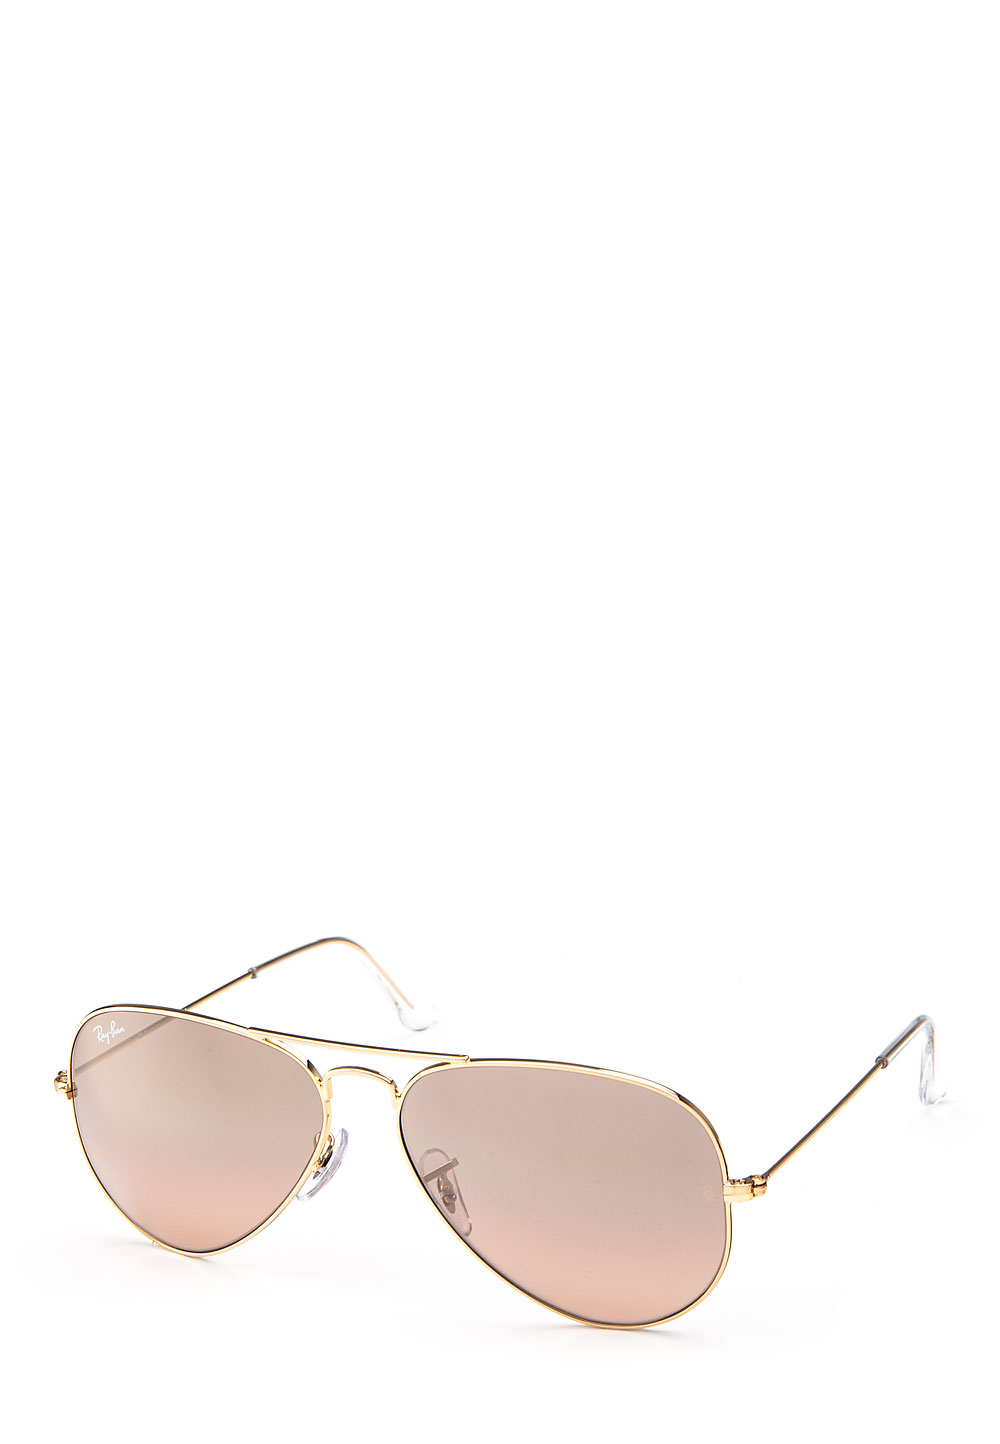 Ray-Ban Sonnenbrille Aviator L, UV 400, golden | Accessoires | Gold | Ray-Ban